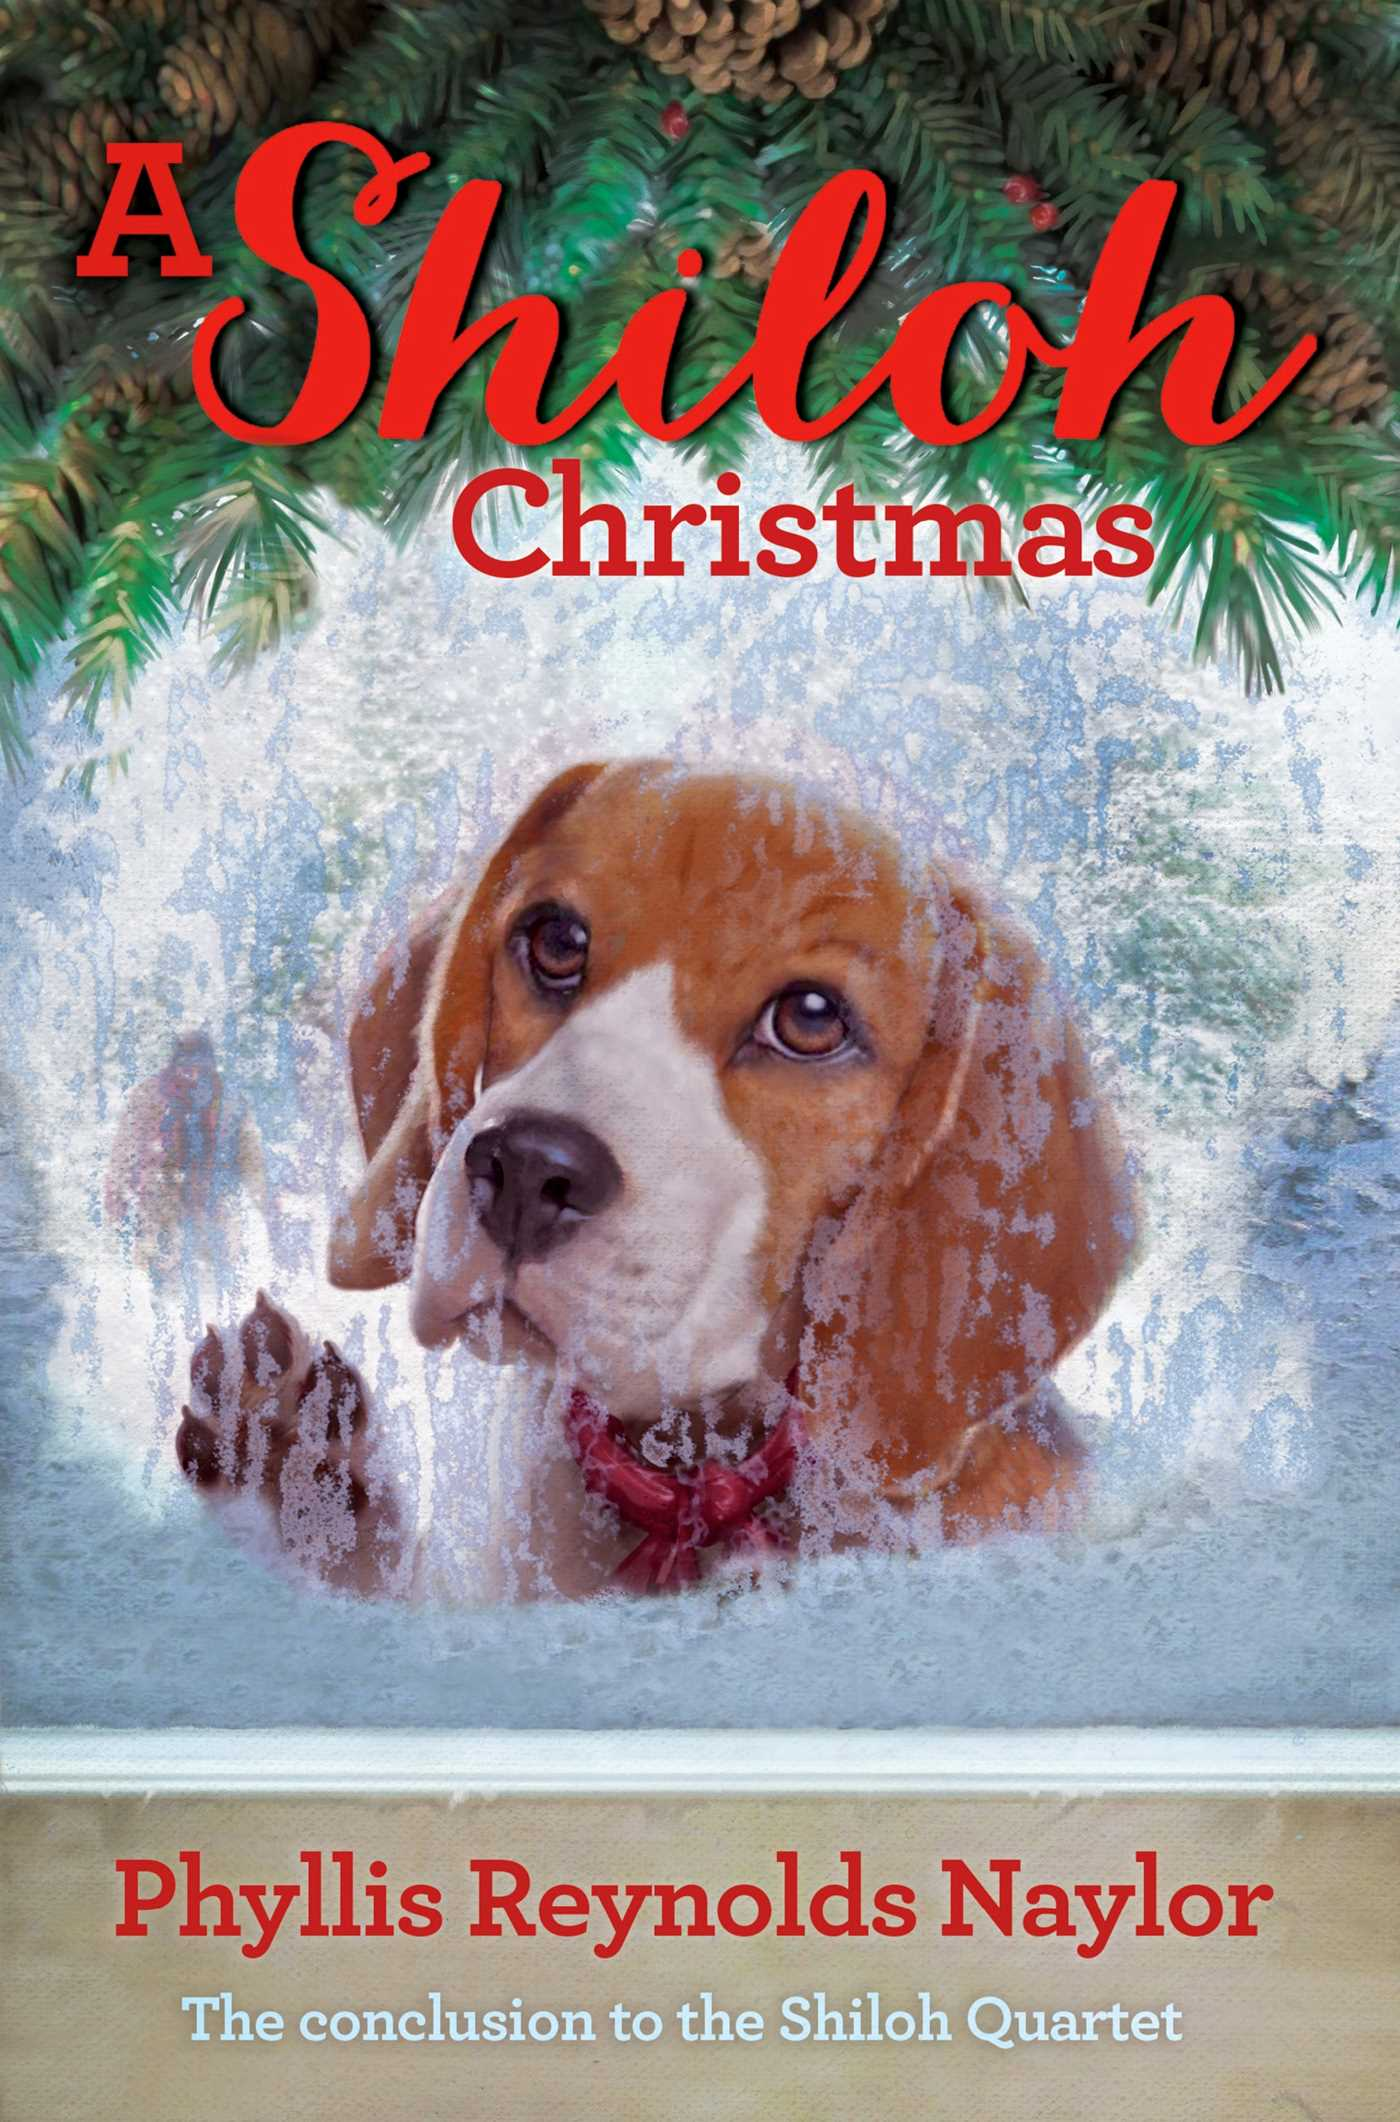 A shiloh christmas 9781481441513 hr